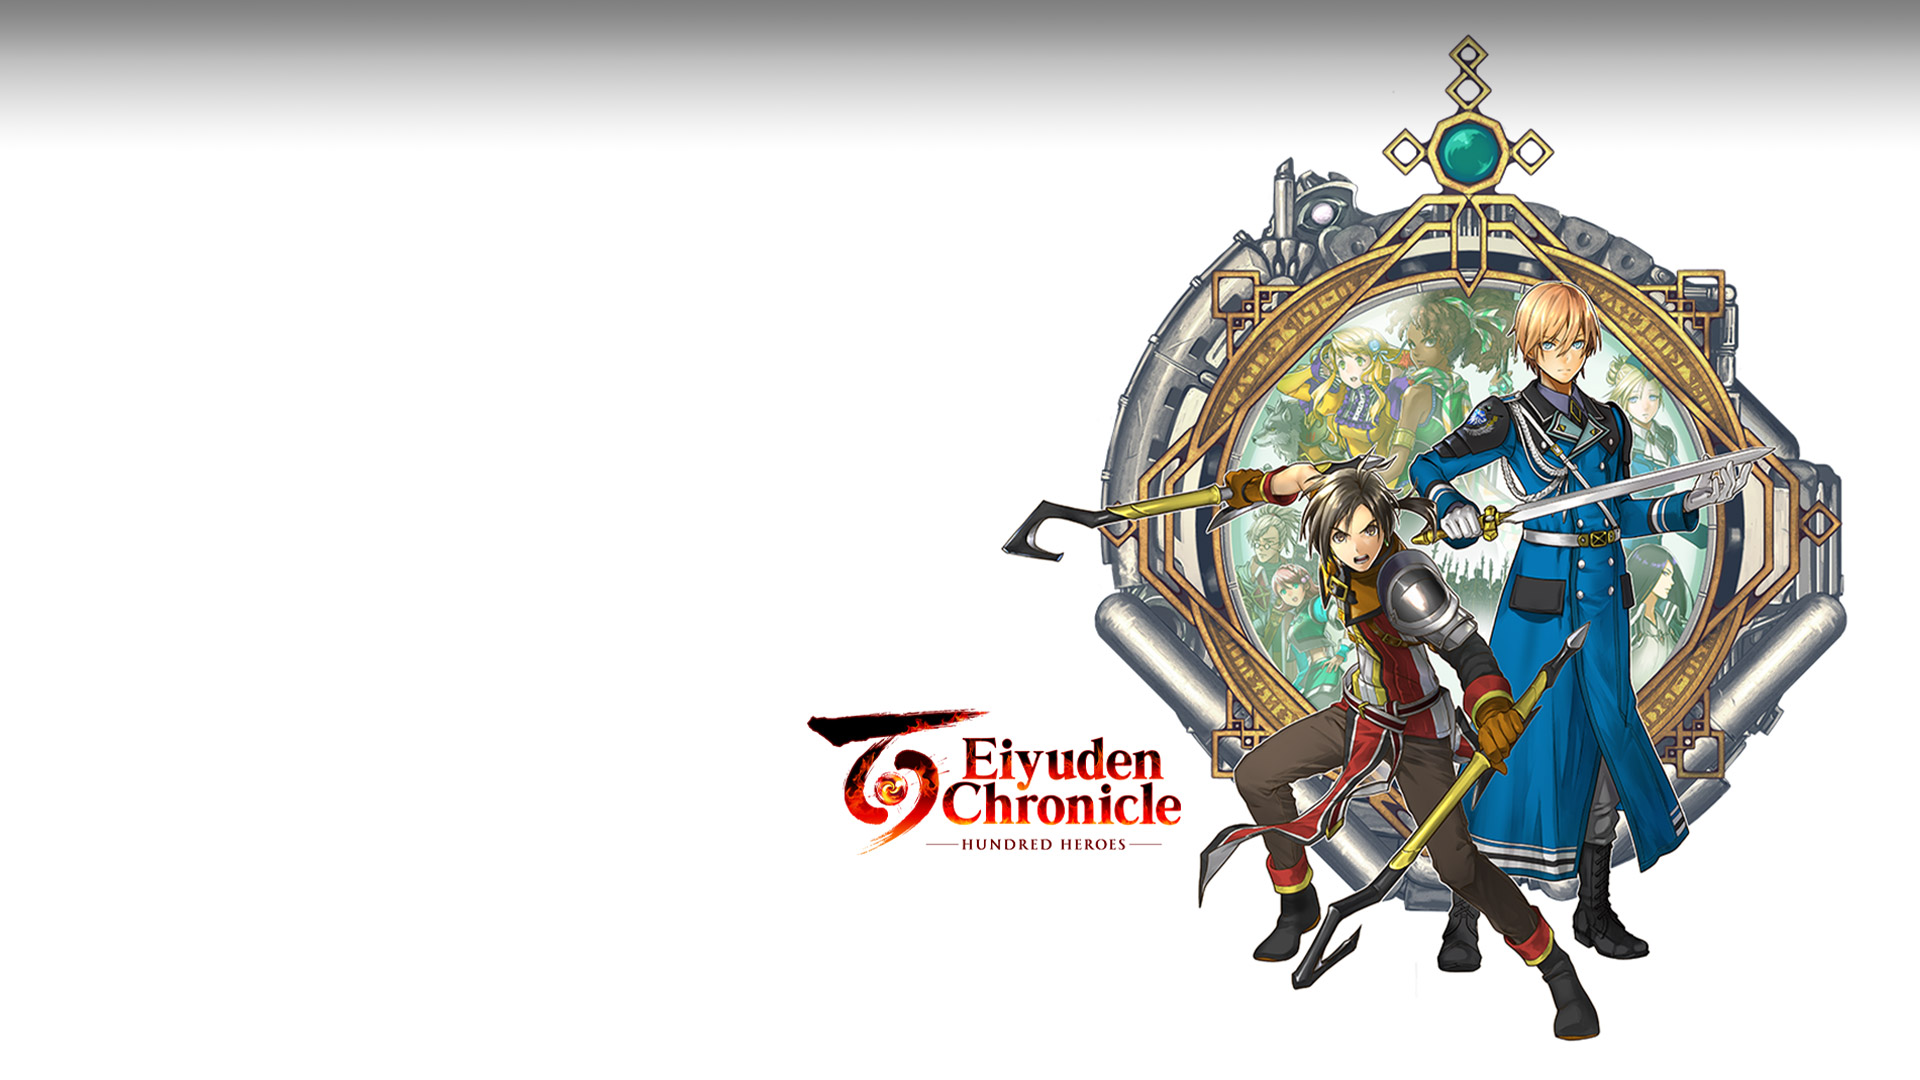 Eiyuden Chronicle: Hundred Heroes. Two characters with weapons standing in front of an amulet-like background with other characters in the centre.